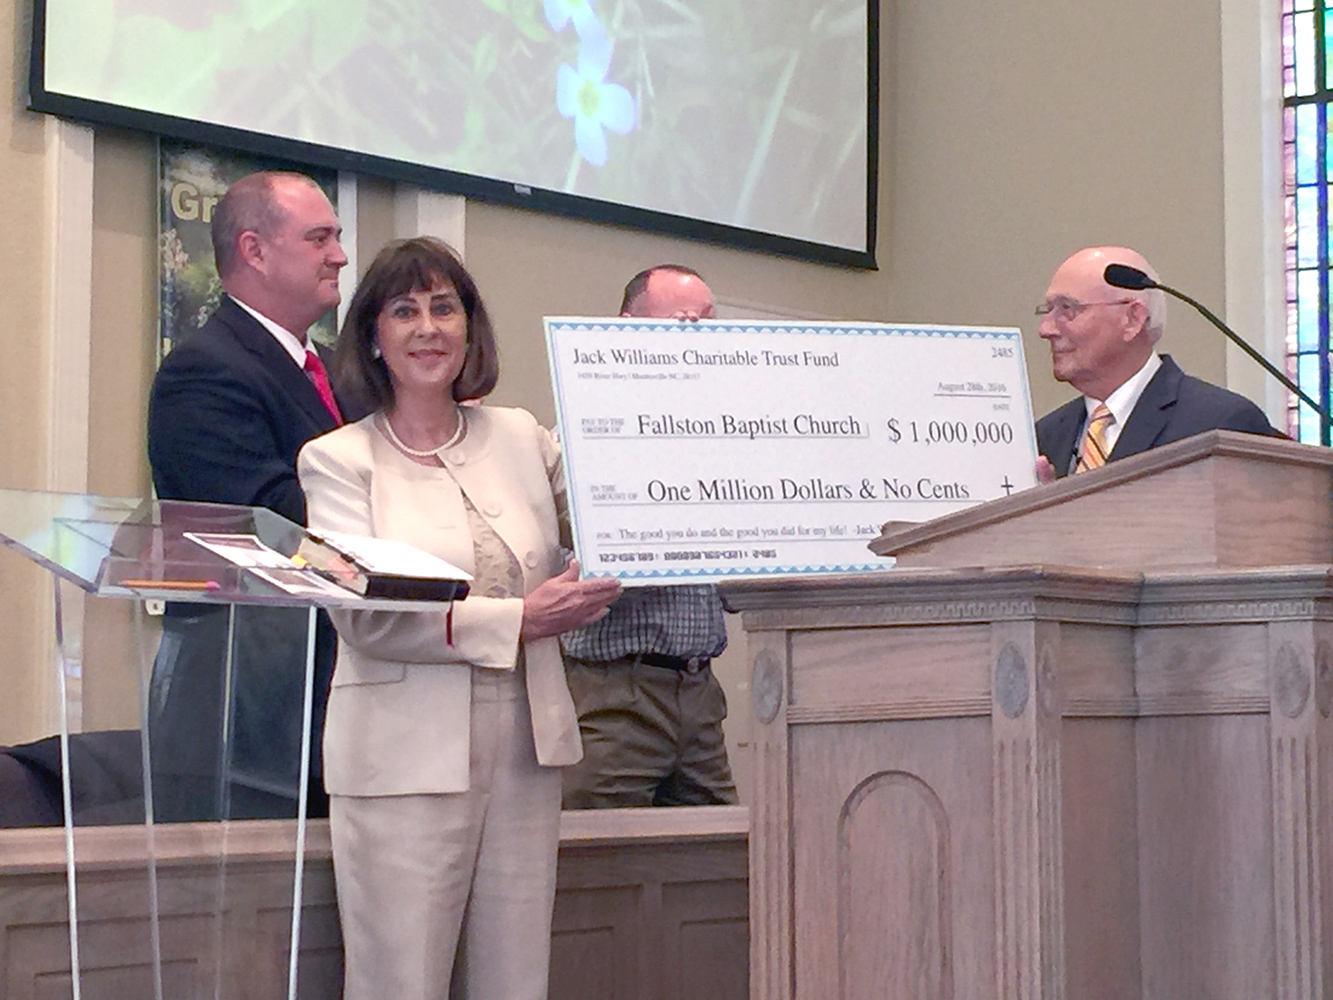 Rev. David Blanton (right) of the Fallston Baptist Church gives a look of congratulations to deacons of the Church as a check for $l million was given to the Church for construction of an activities center. The check was given from the trust of Jack R. Williams, owner of Queens Landing in Mooresville. Williams had been a member of the Church for 72-years and passed away on January 5, 2016. Presenting the check of his behalf was Queens Landings Vice-President Deborah Harwell.